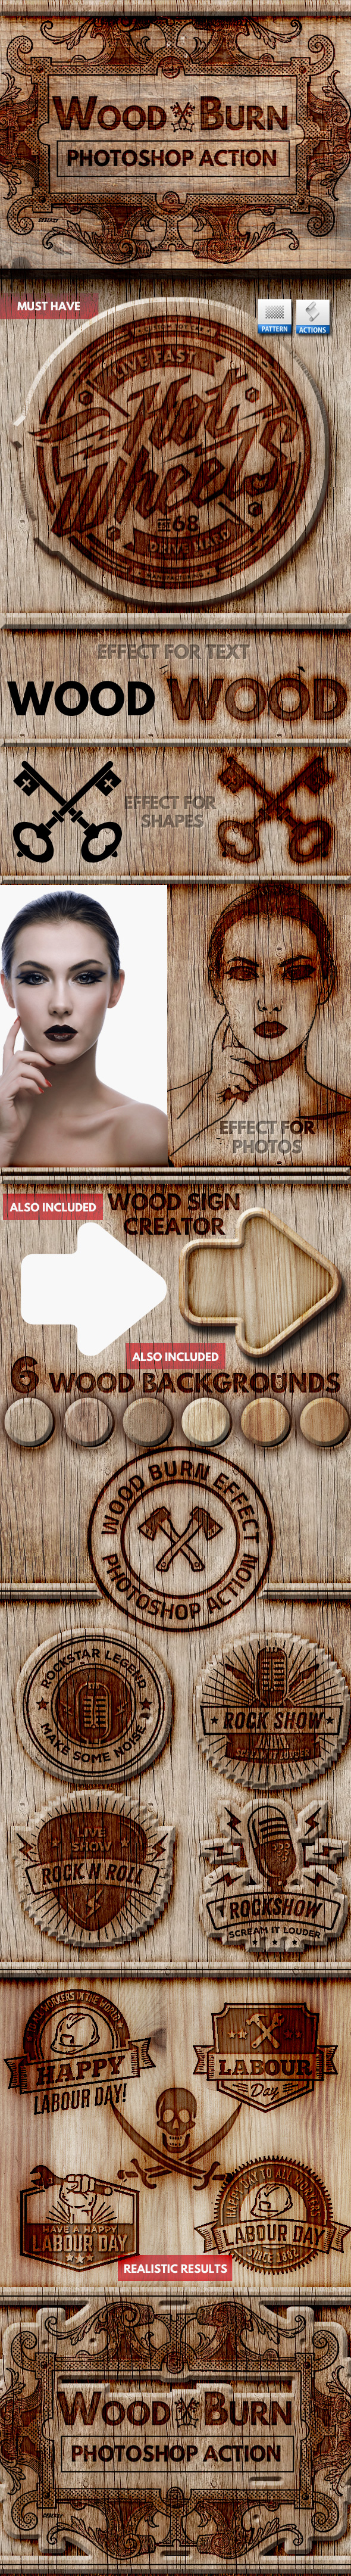 Wood Burn Effect Photoshop Action - Utilities Actions